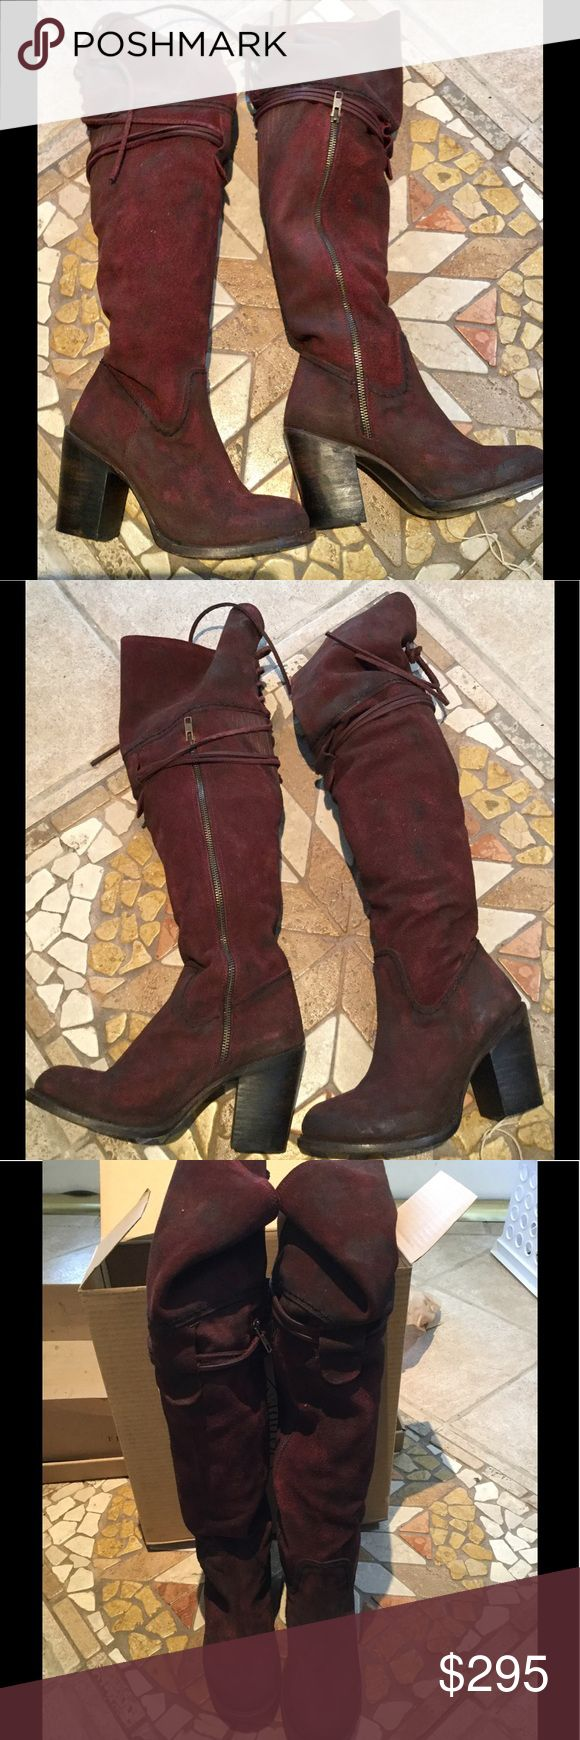 """Freebird by steve Brock boot wine OTK NWT Dare to make a bold statement in the over-the-knee Brock boots in a rich wine suede. A lace-up leather design behind the knee with leather straps complete the 23"""" tops. These soft leather tops can be adjusted or flipped down for a versatile look. Walk tall and confident in a 3 1/4"""" stacked leather heel and round toe. Distressing deepens color around the edges and adds character to the leather. Free People, boho hippy hippie cute sexy hot Abercrombie…"""